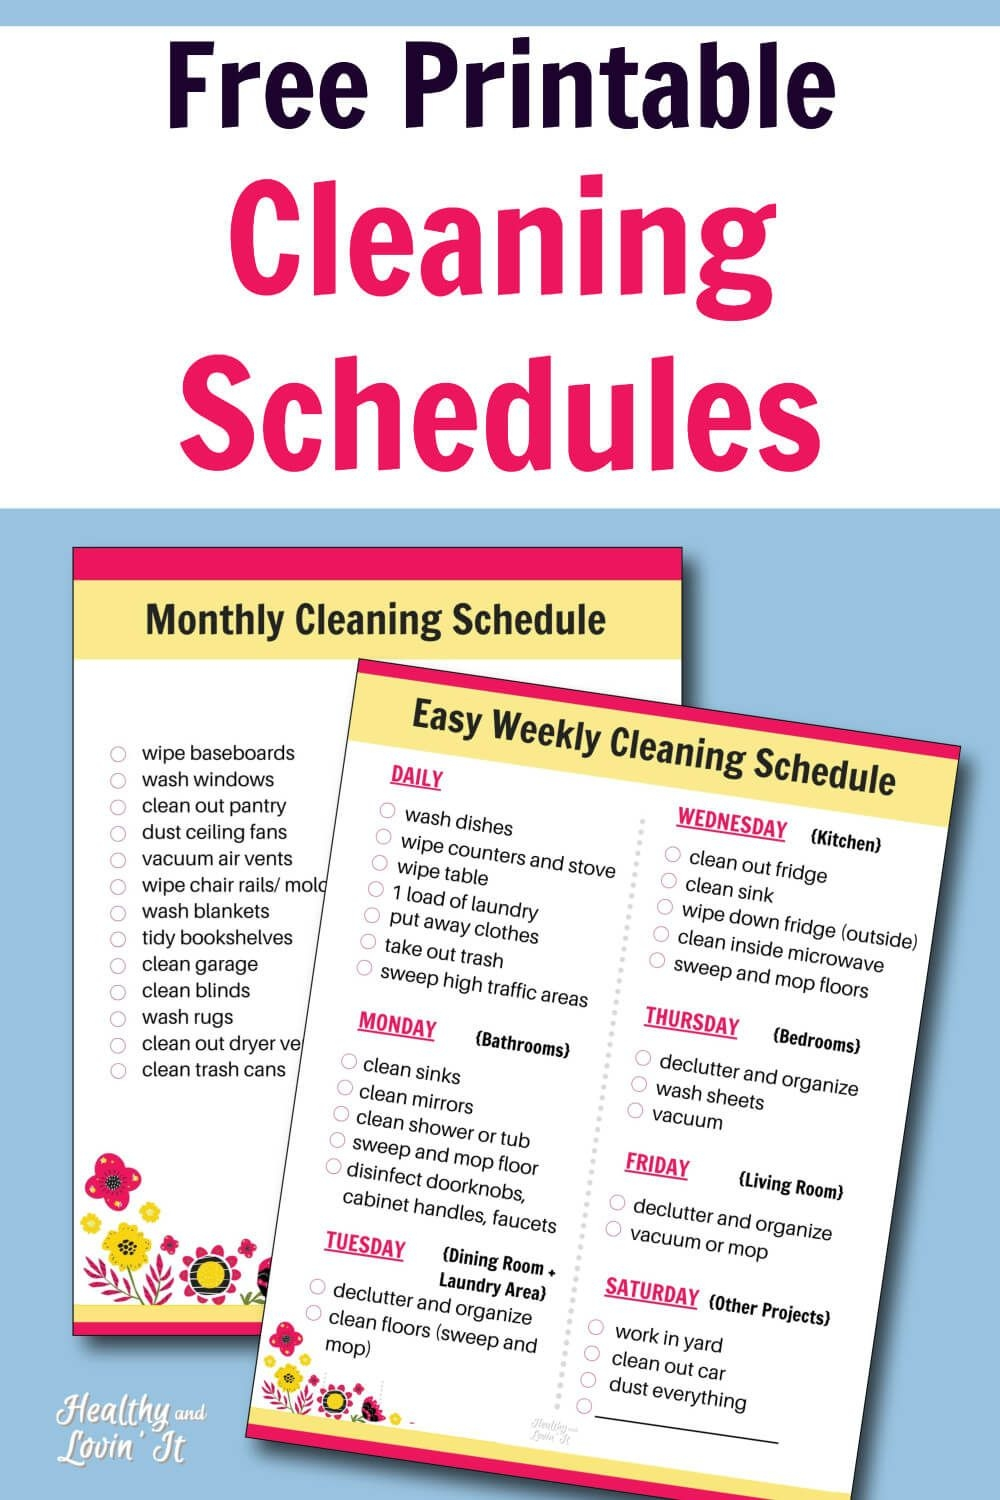 Free Printable Cleaning Schedule Daily, Weekly, And